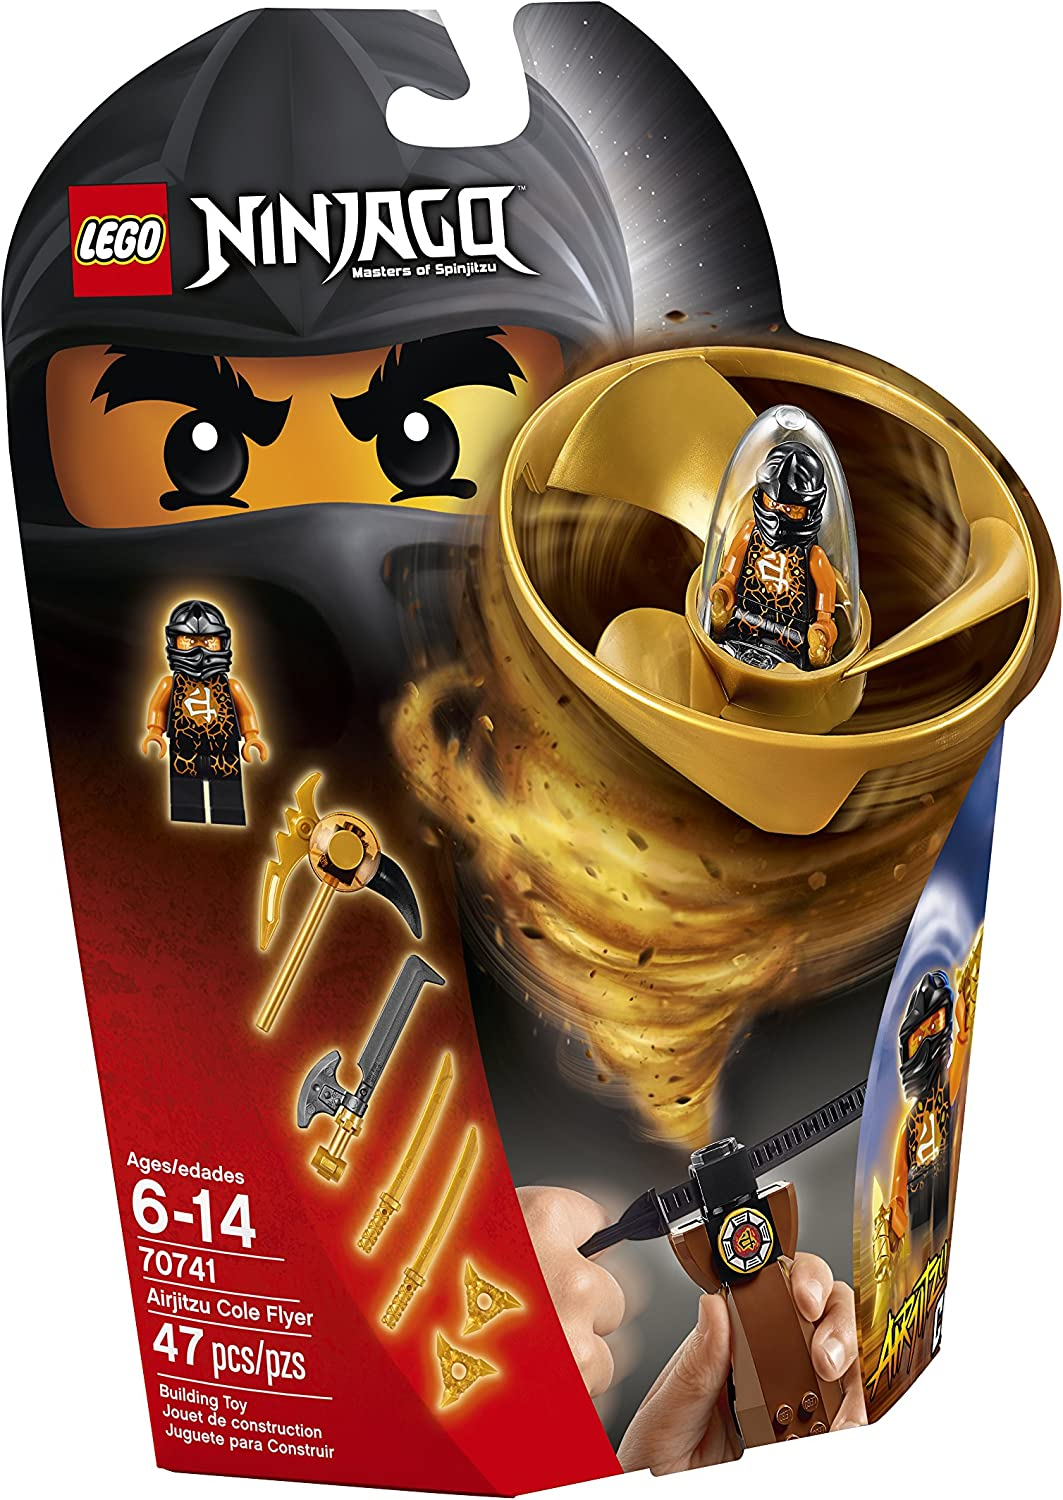 LEGO Ninjago Airjitzu Cole Flyer 70741 Building Kit